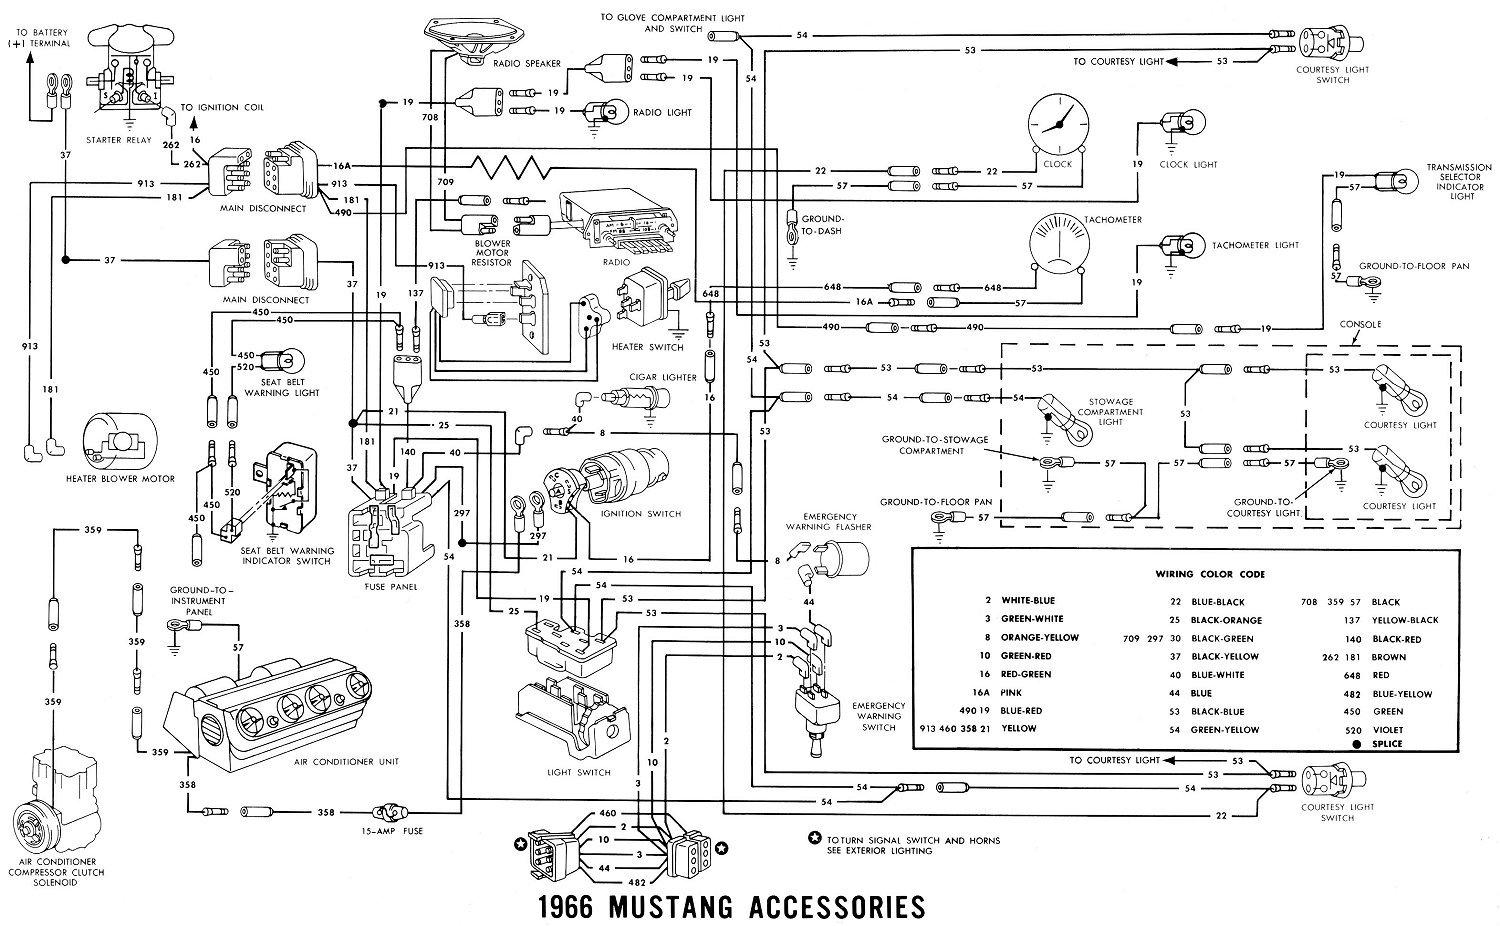 66acces1 vintage mustang wiring diagrams 1965 mustang wiring diagram pdf at edmiracle.co